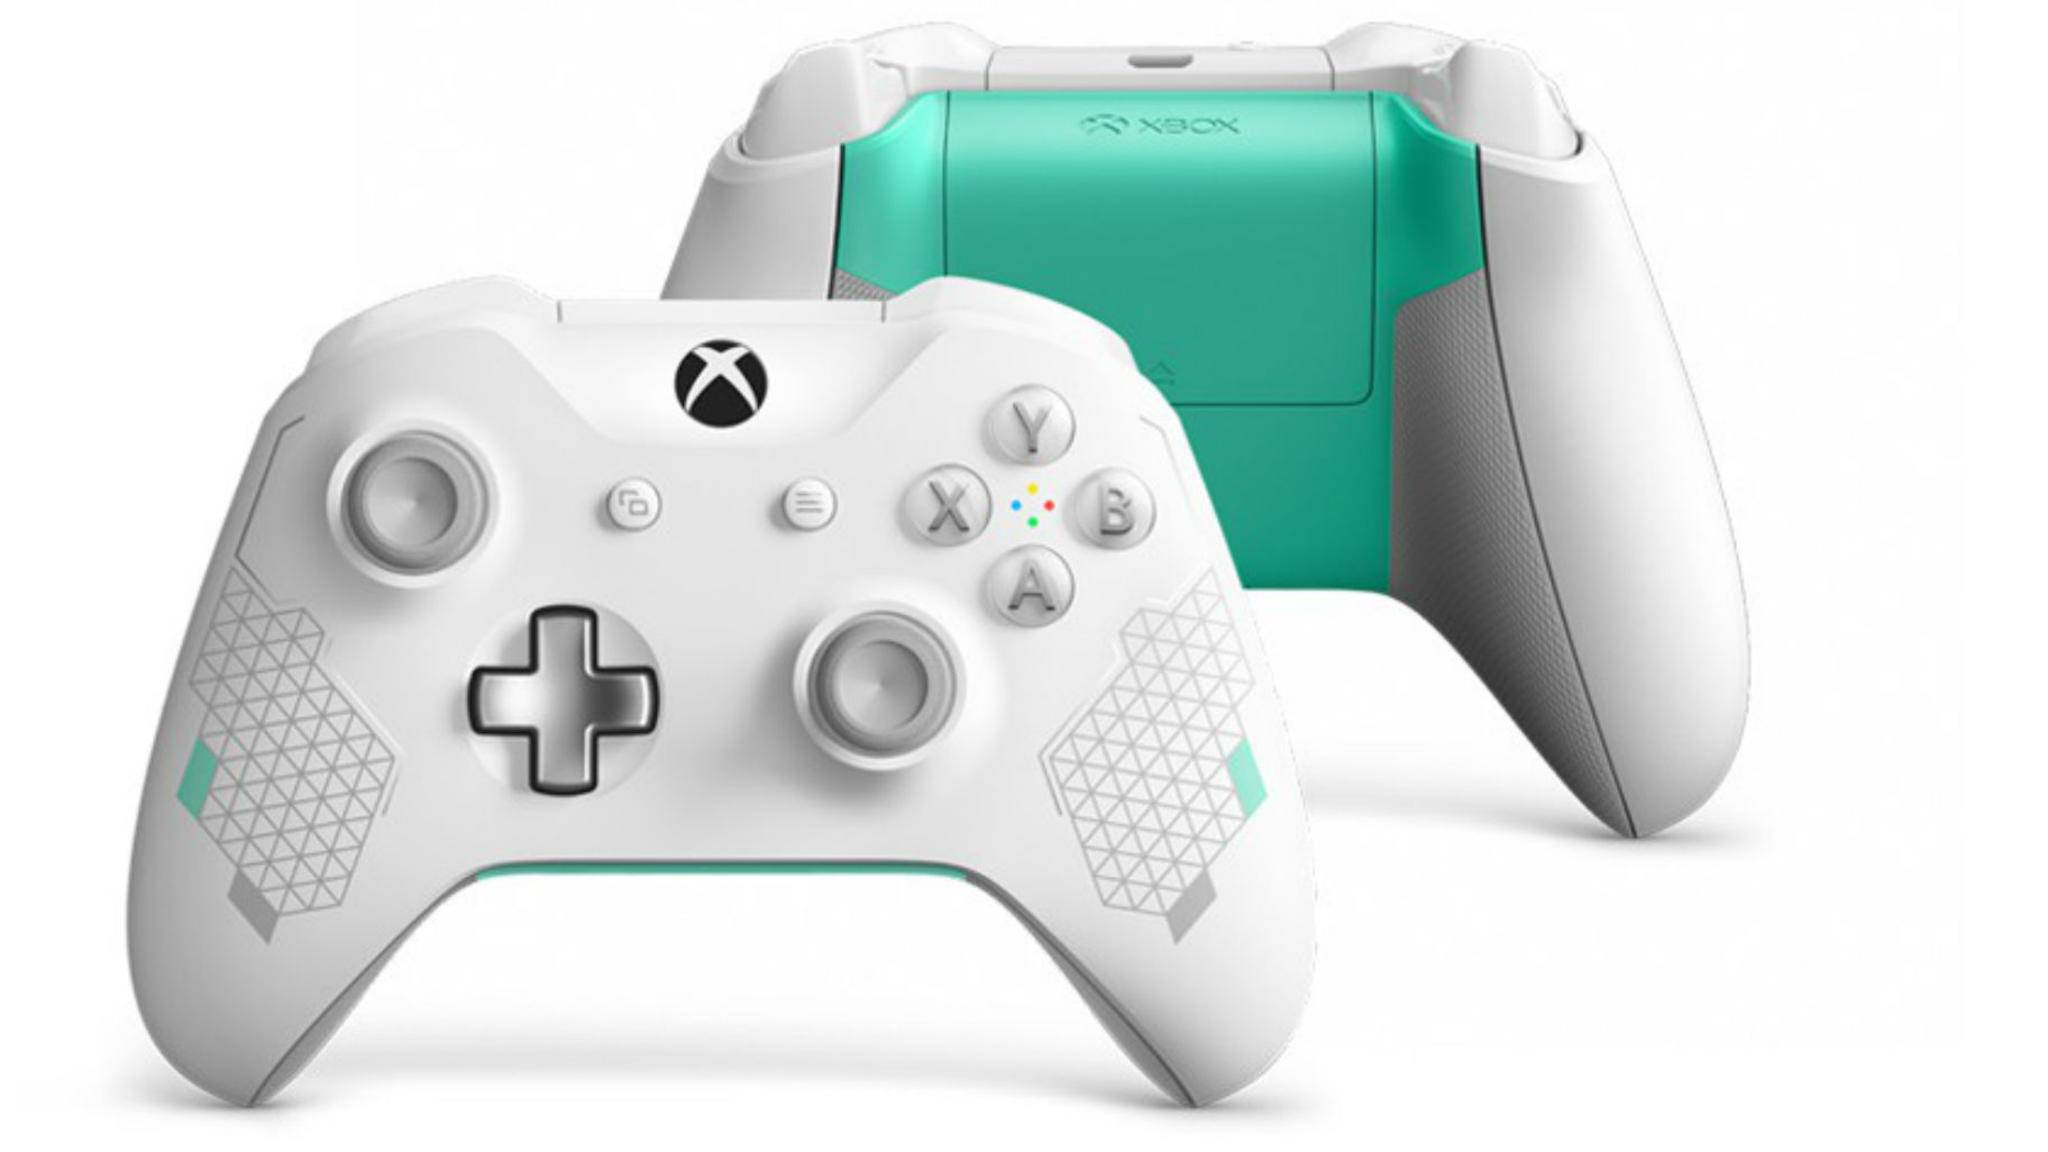 Ein Traum in Weiß: Der Xbox Wireless Controller in der Sport White Special Edition.